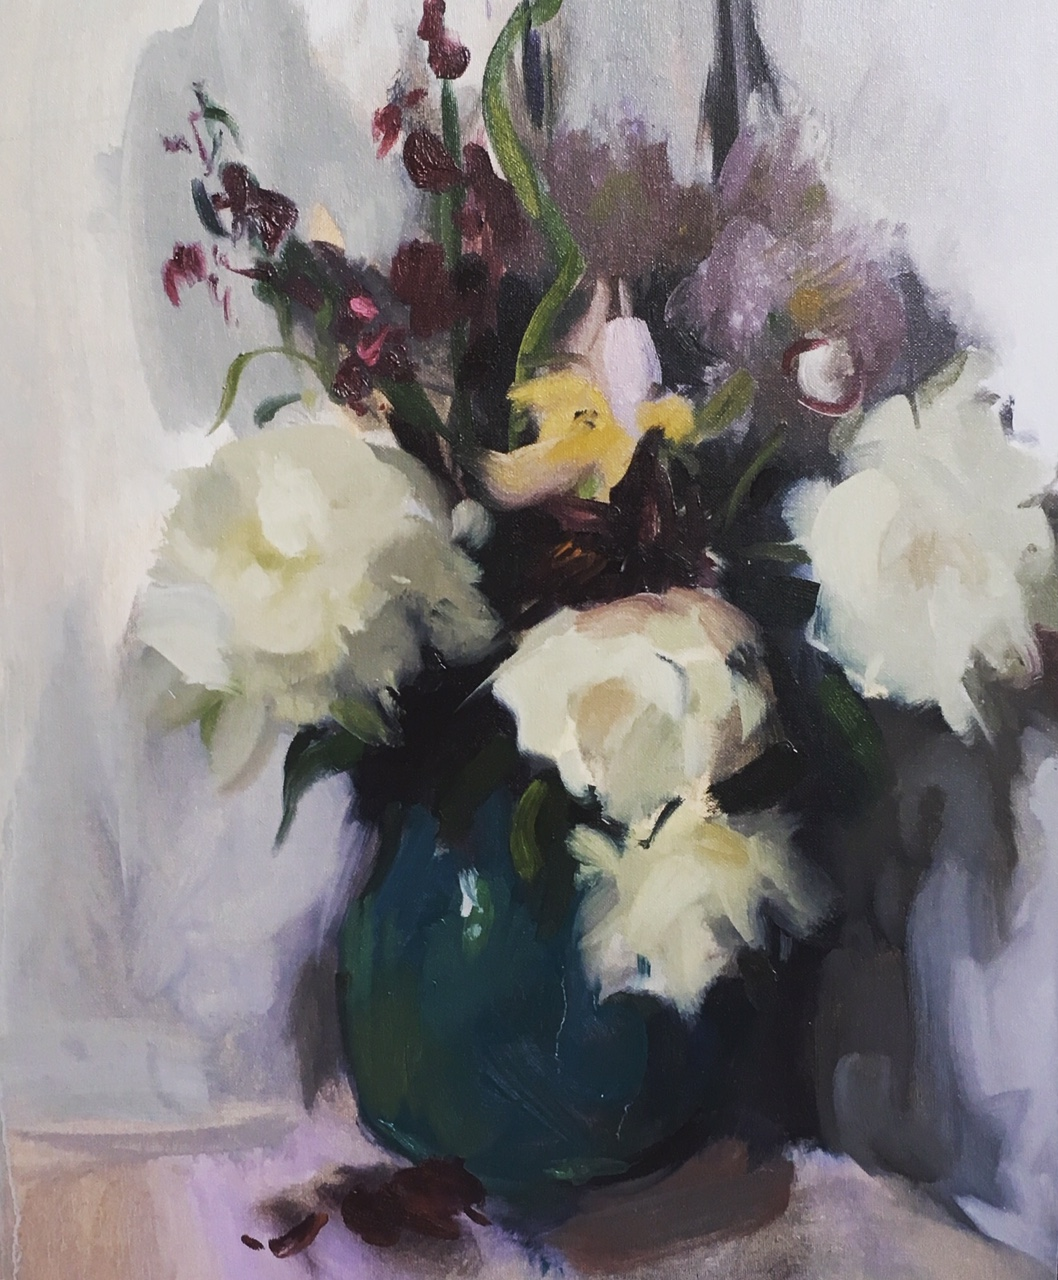 Floral by Serena Rowe, from AOH, 2019